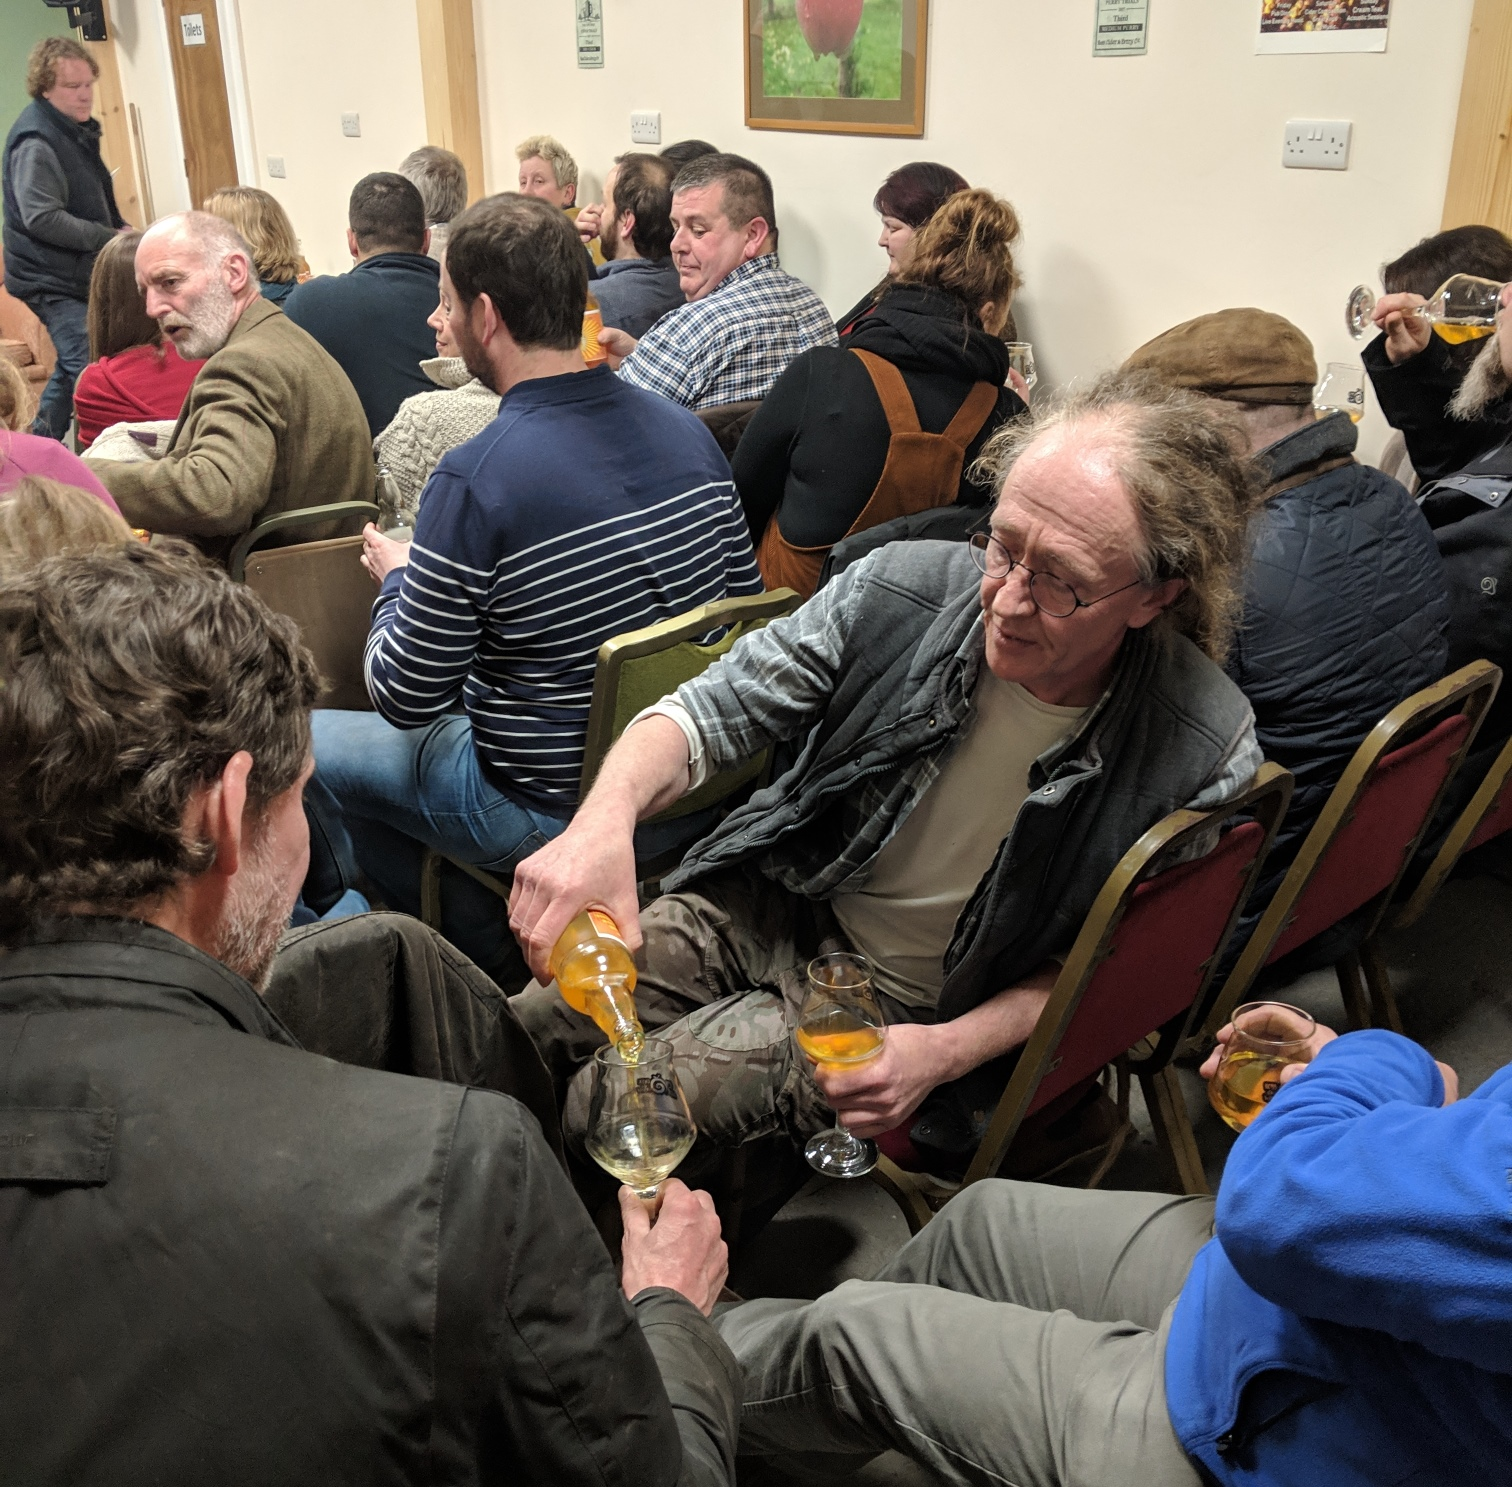 Even Cidermakers come to Cider Club!